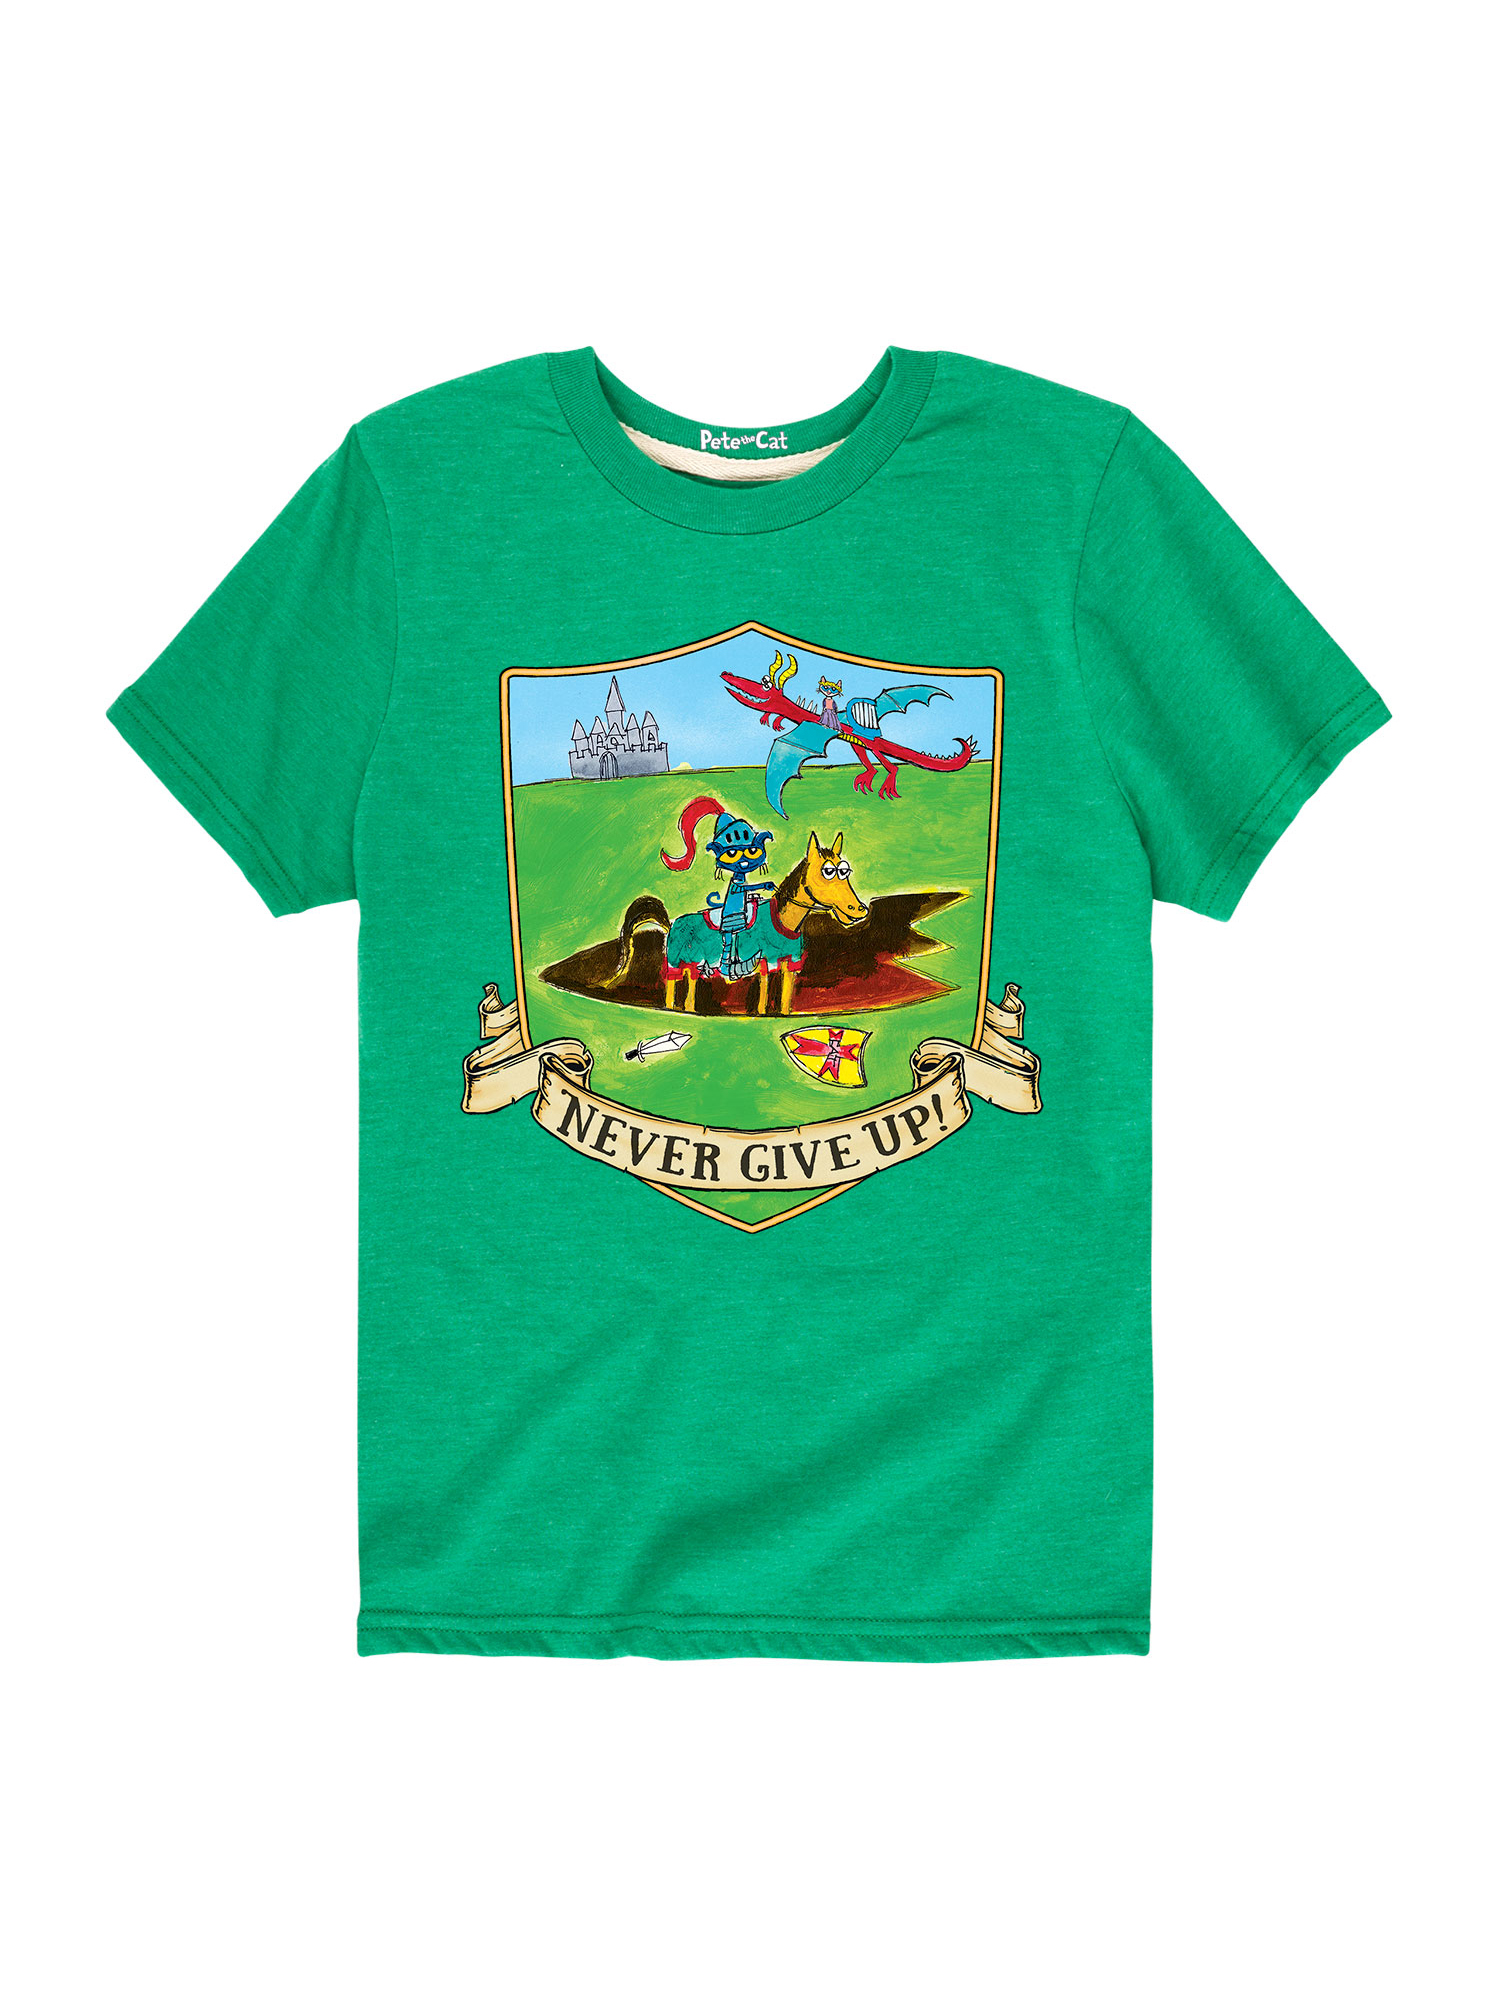 Pete The Cat Never Give Up - Toddler Short Sleeve Tee